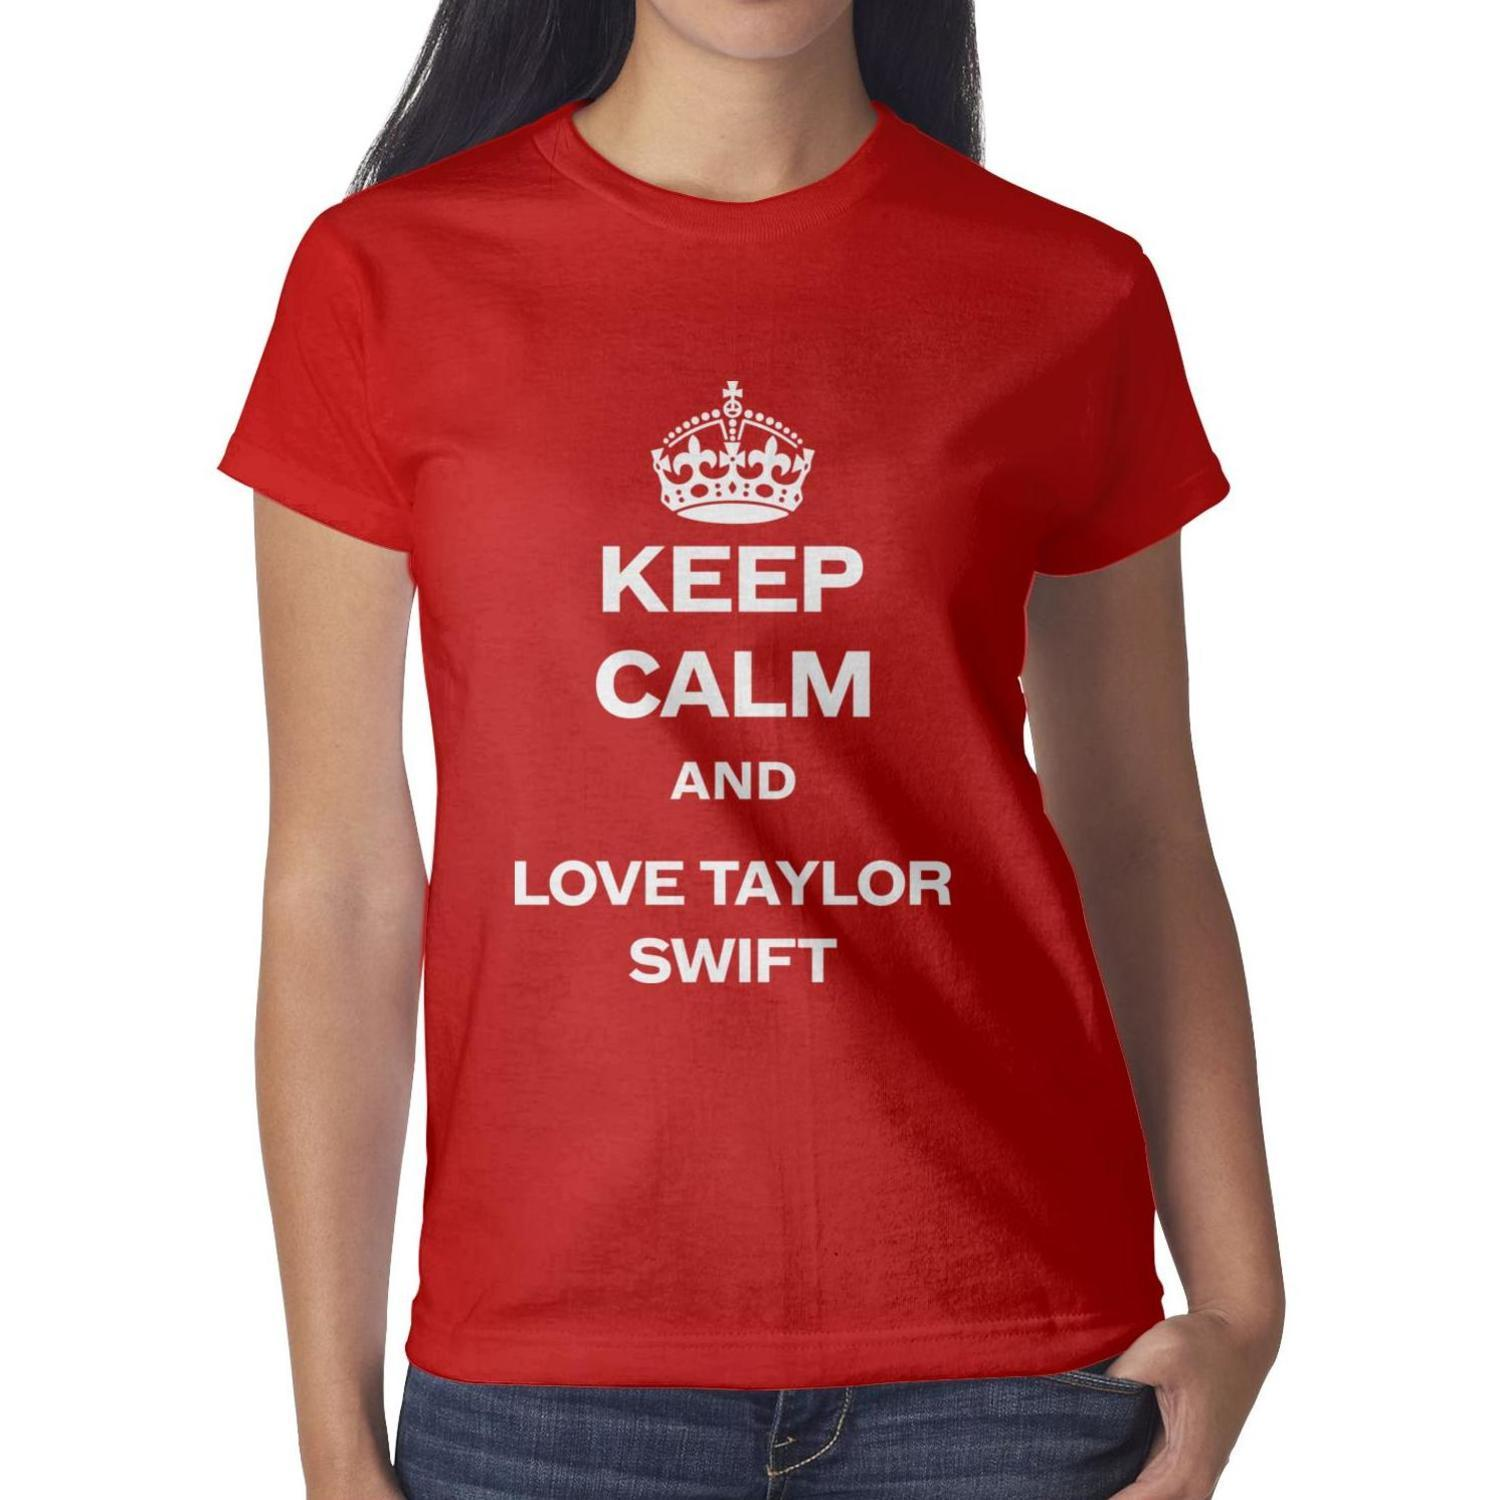 Keep calm and love Taylor Swift red t shirt,shirts,t shirts,tee shirts  shirt design funny designer custom casual t shirt